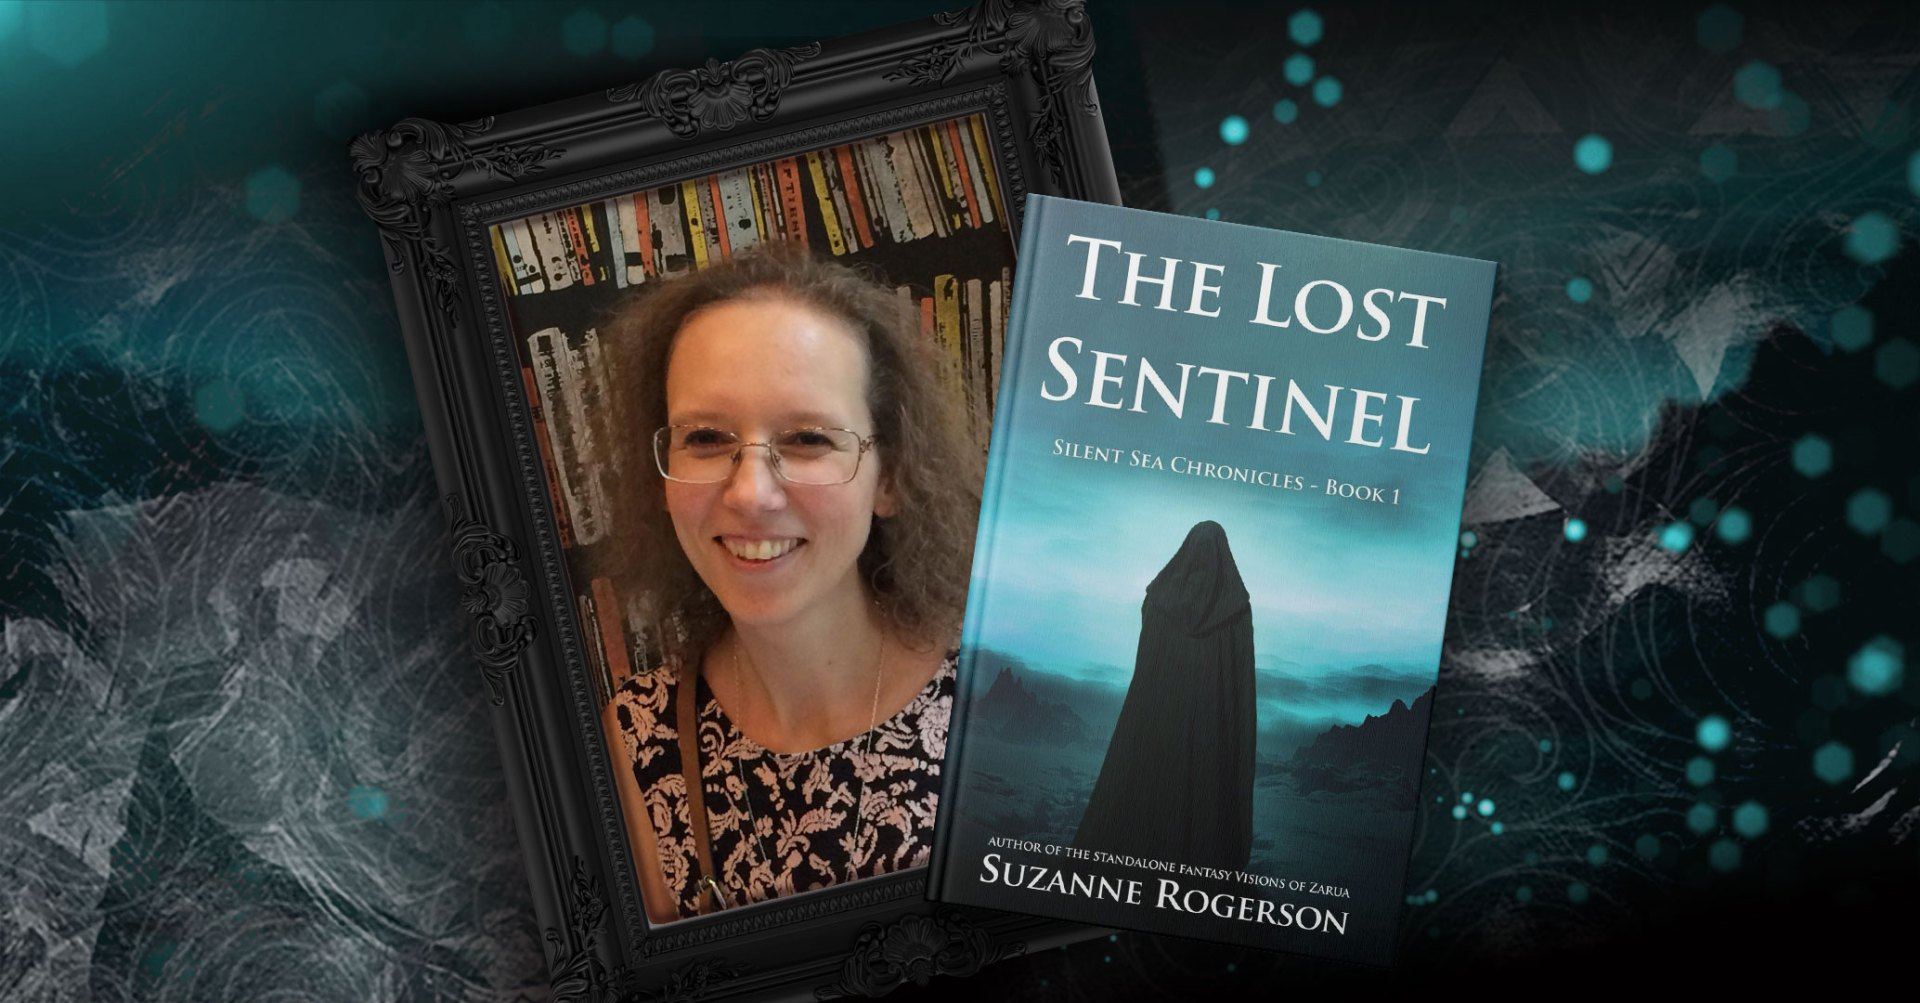 Storytellers On Tour Presents: The Lost Sentinel by Suzanna Rogerson